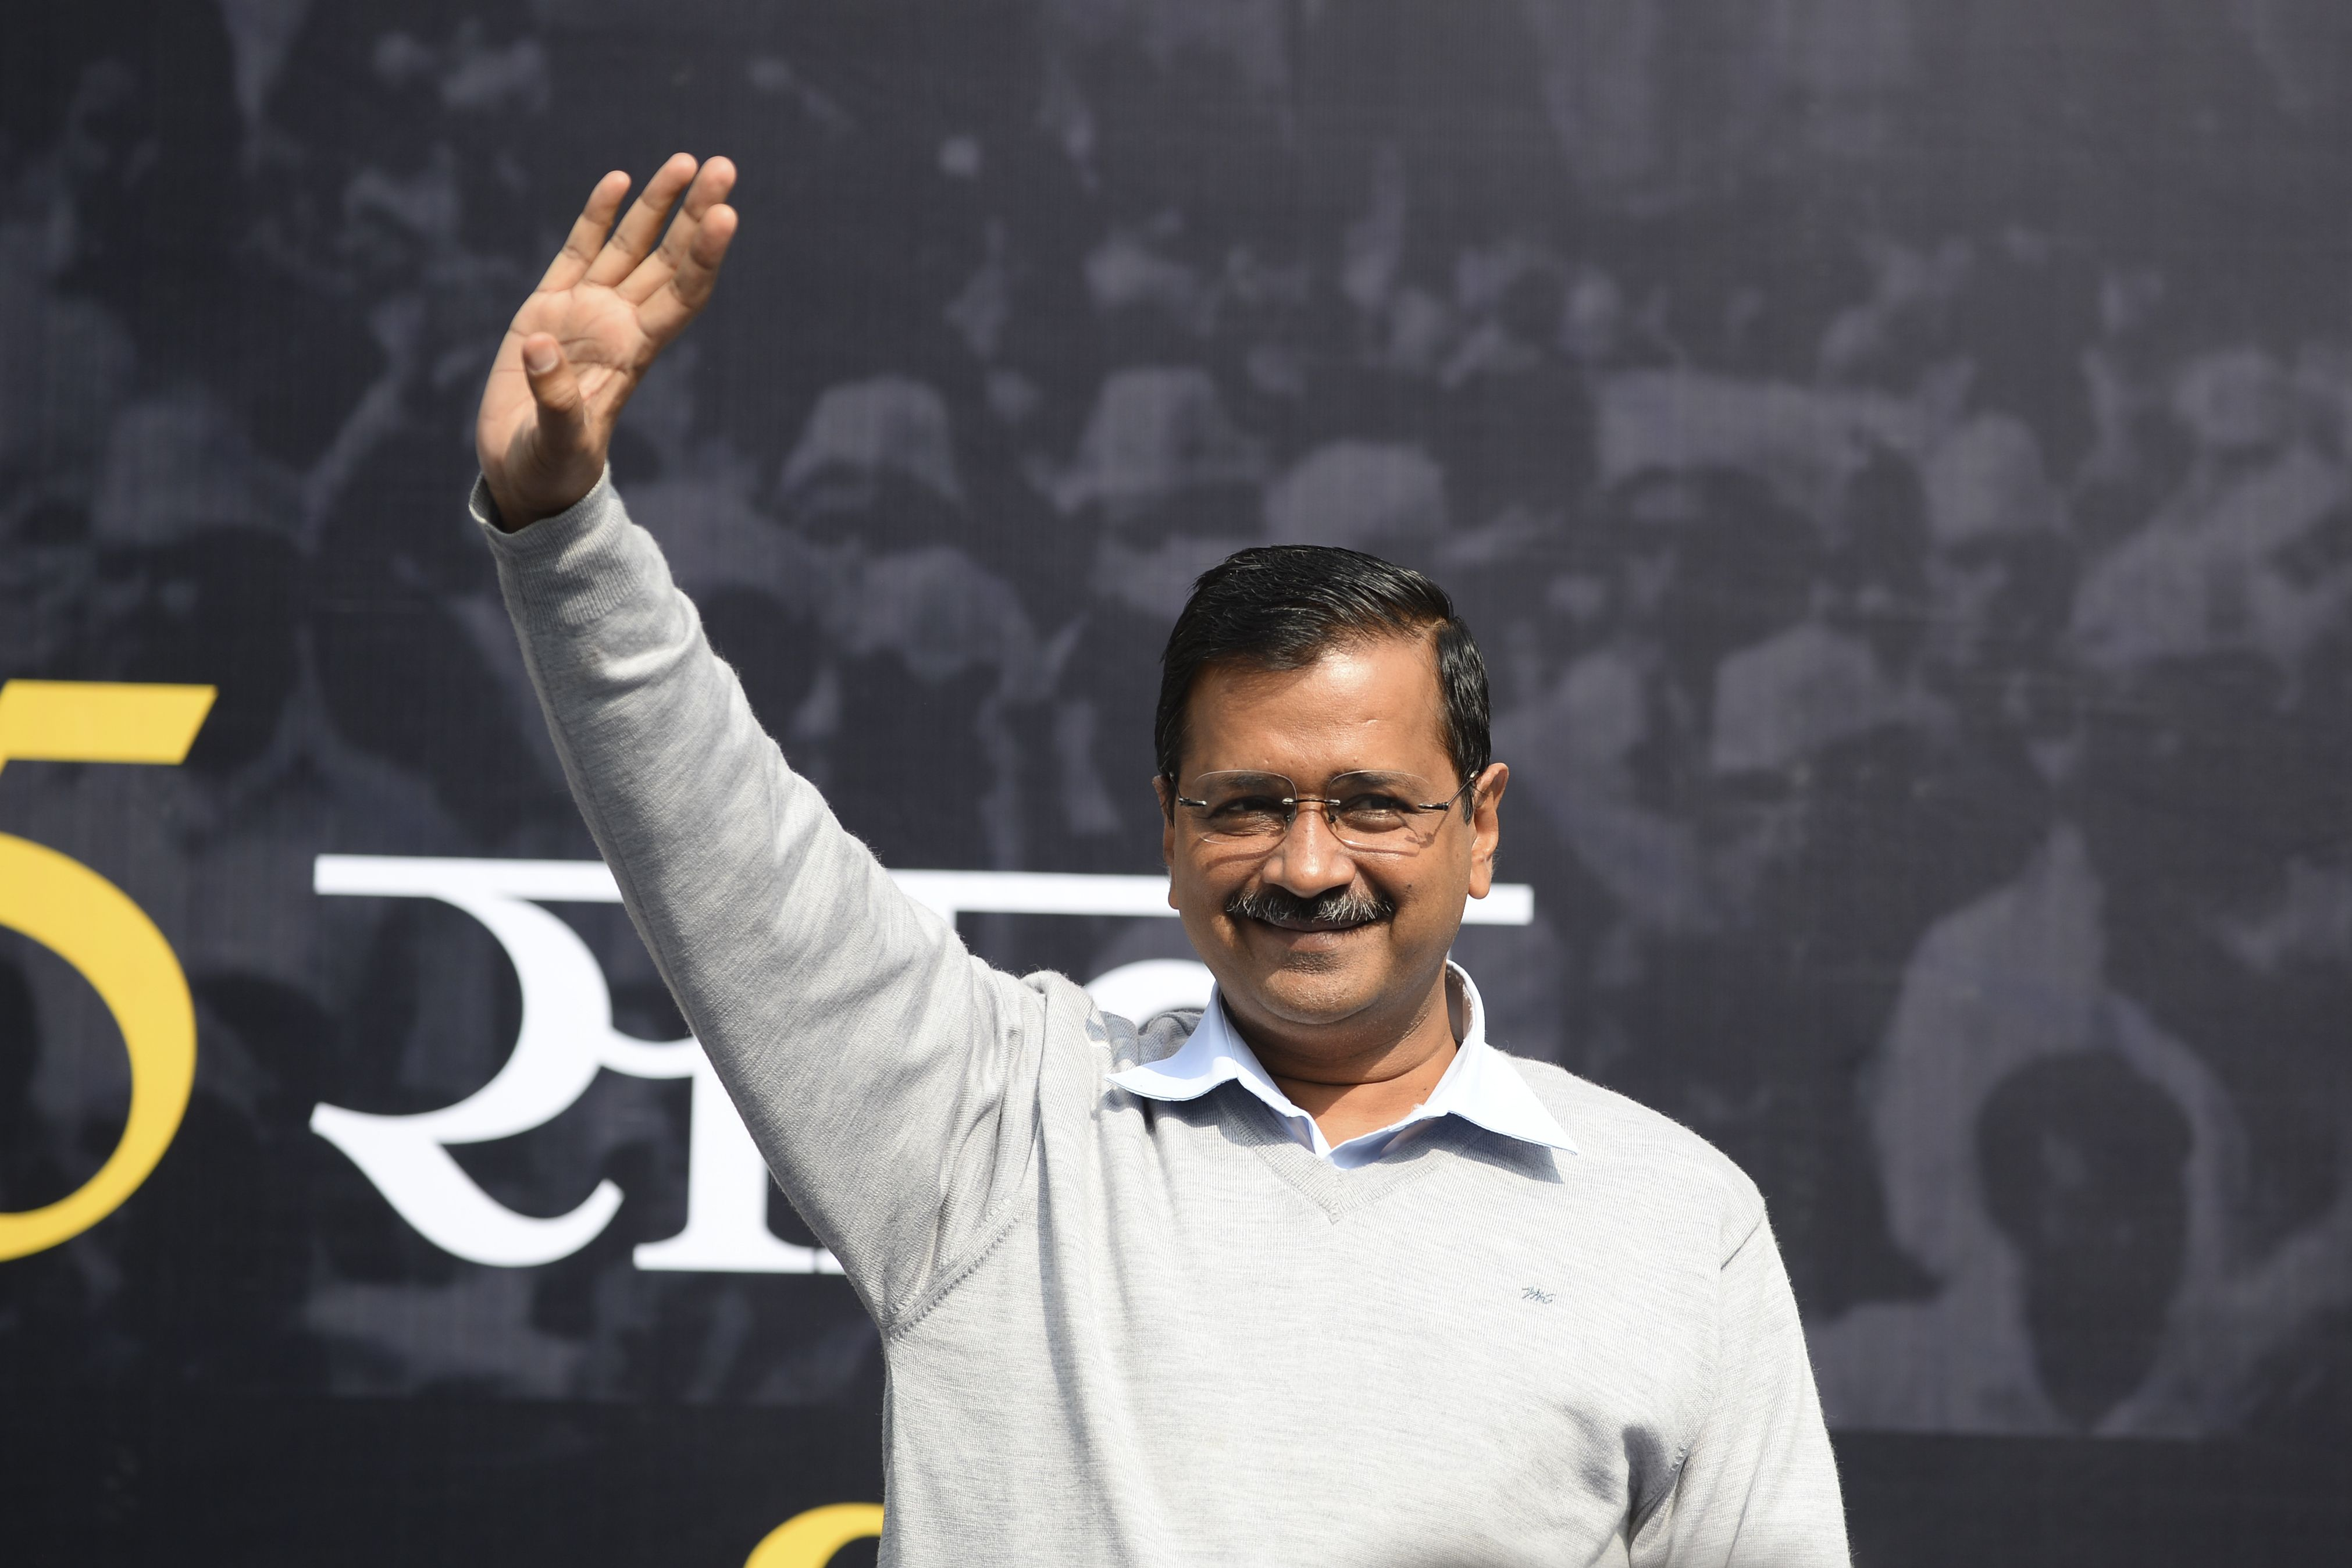 Arvind Kejriwal's freebies pose key questions about social justice